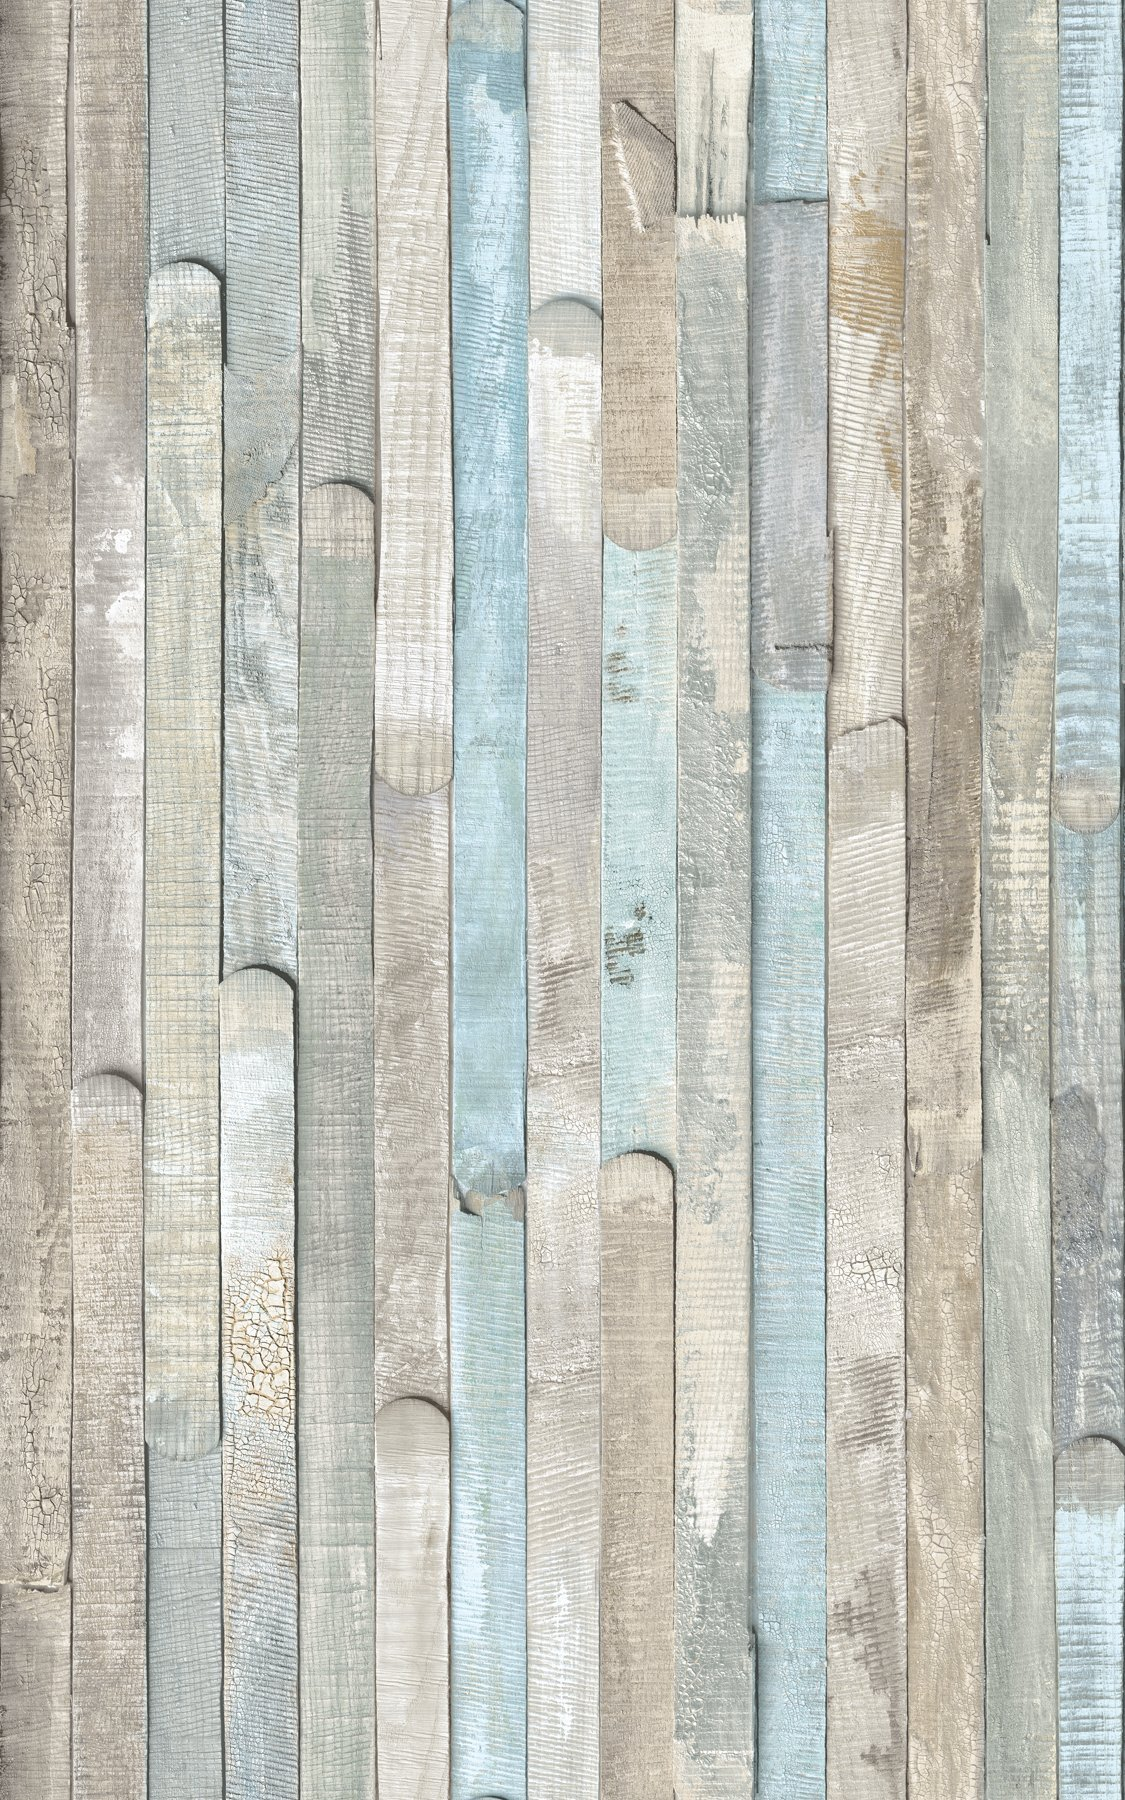 Wood Pattern Contact Paper Beach Self Adhesive Home Wall Rustic Decor Kit